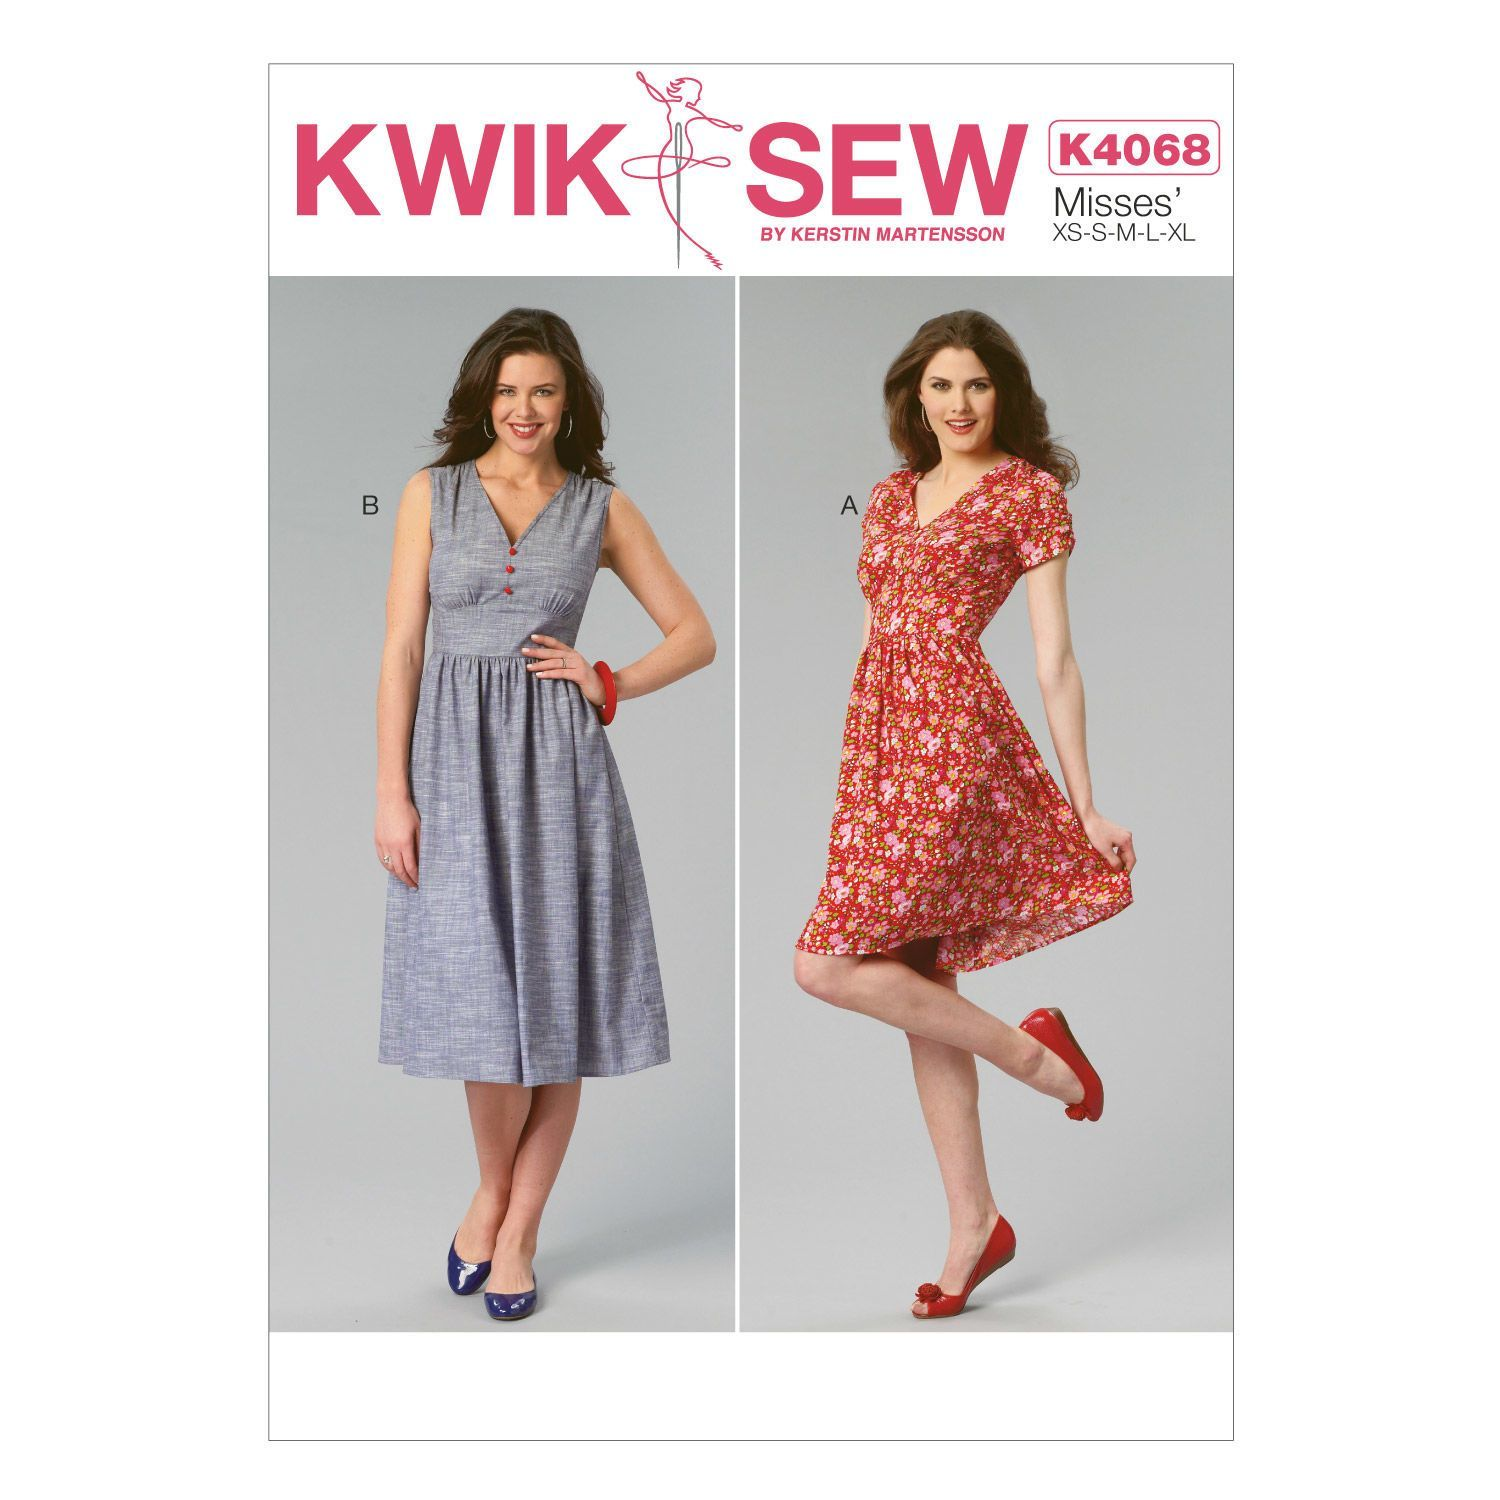 Mccall Pattern K4068 All Sizes -Kwik Sew Pattern | Sewing stuff ...